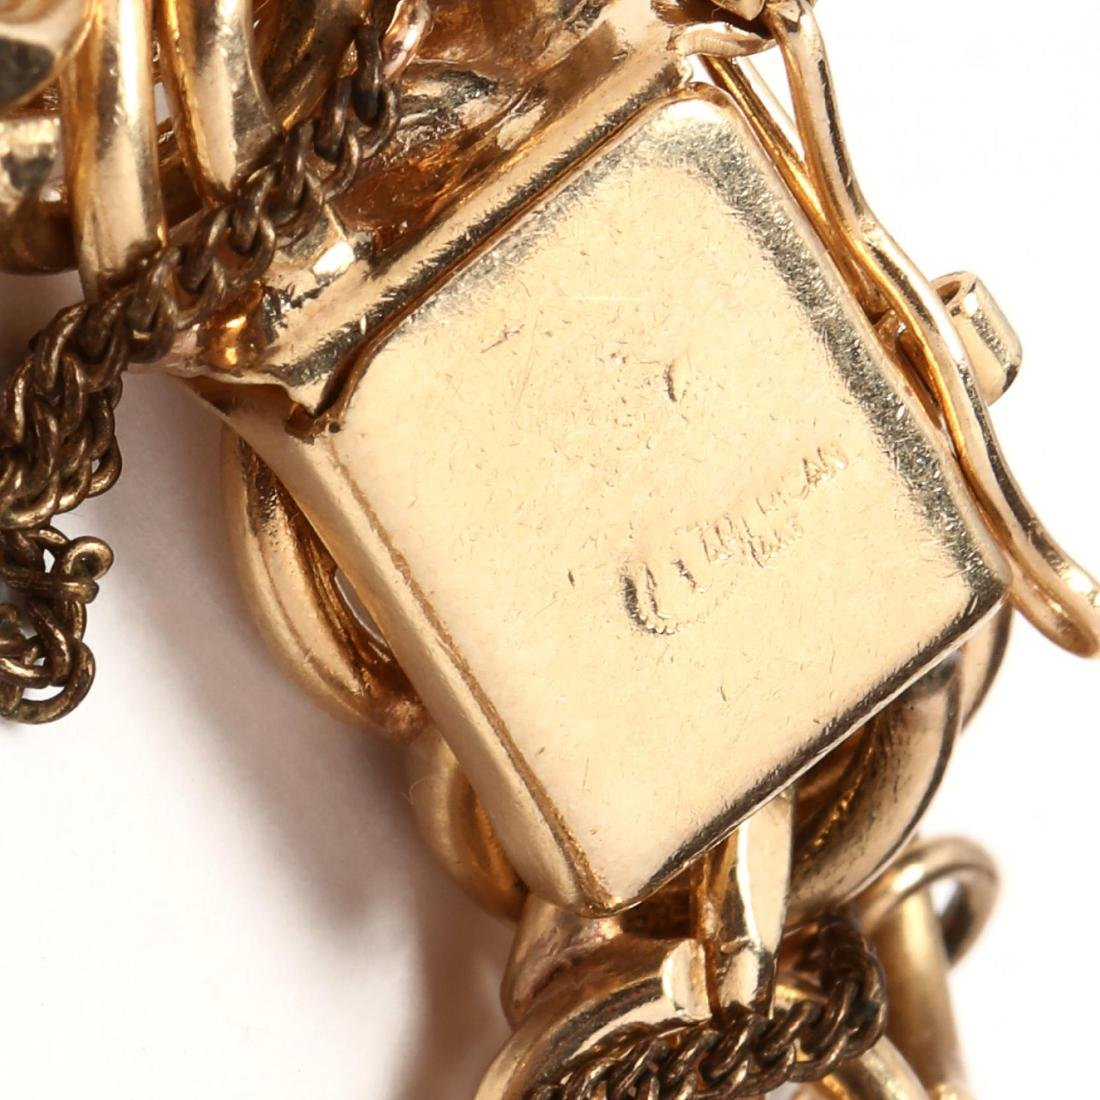 Gold Charm Bracelet and Charms - 4